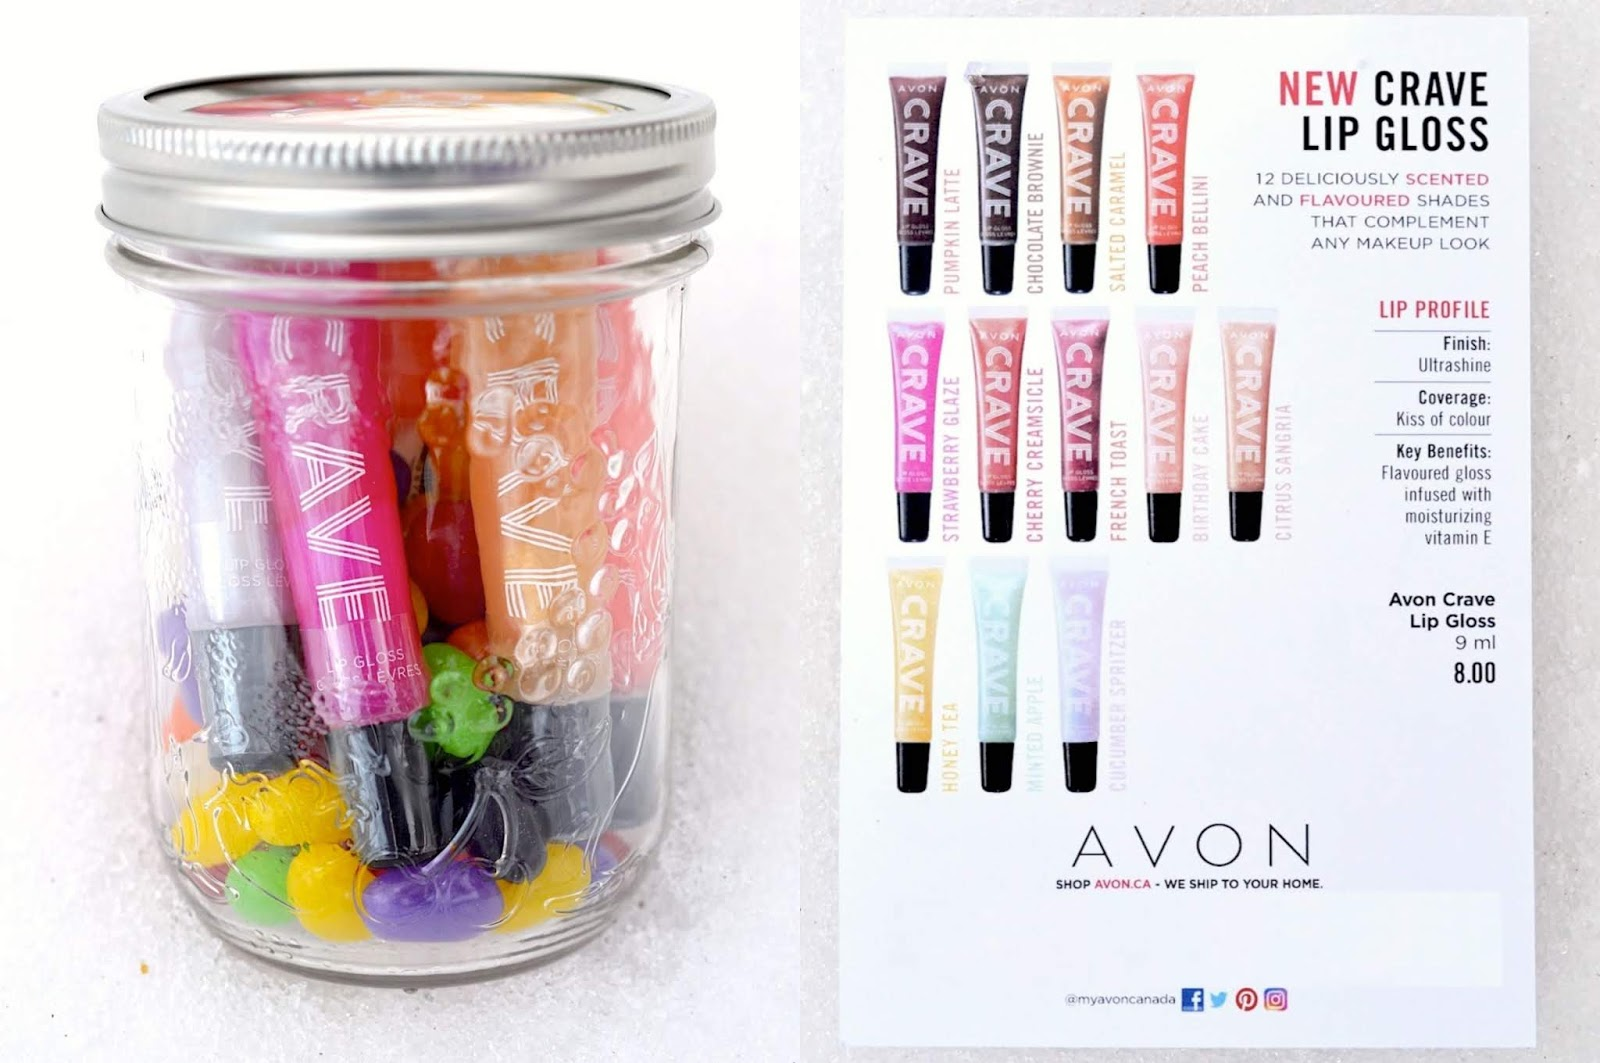 AVON Crave Lip Gloss